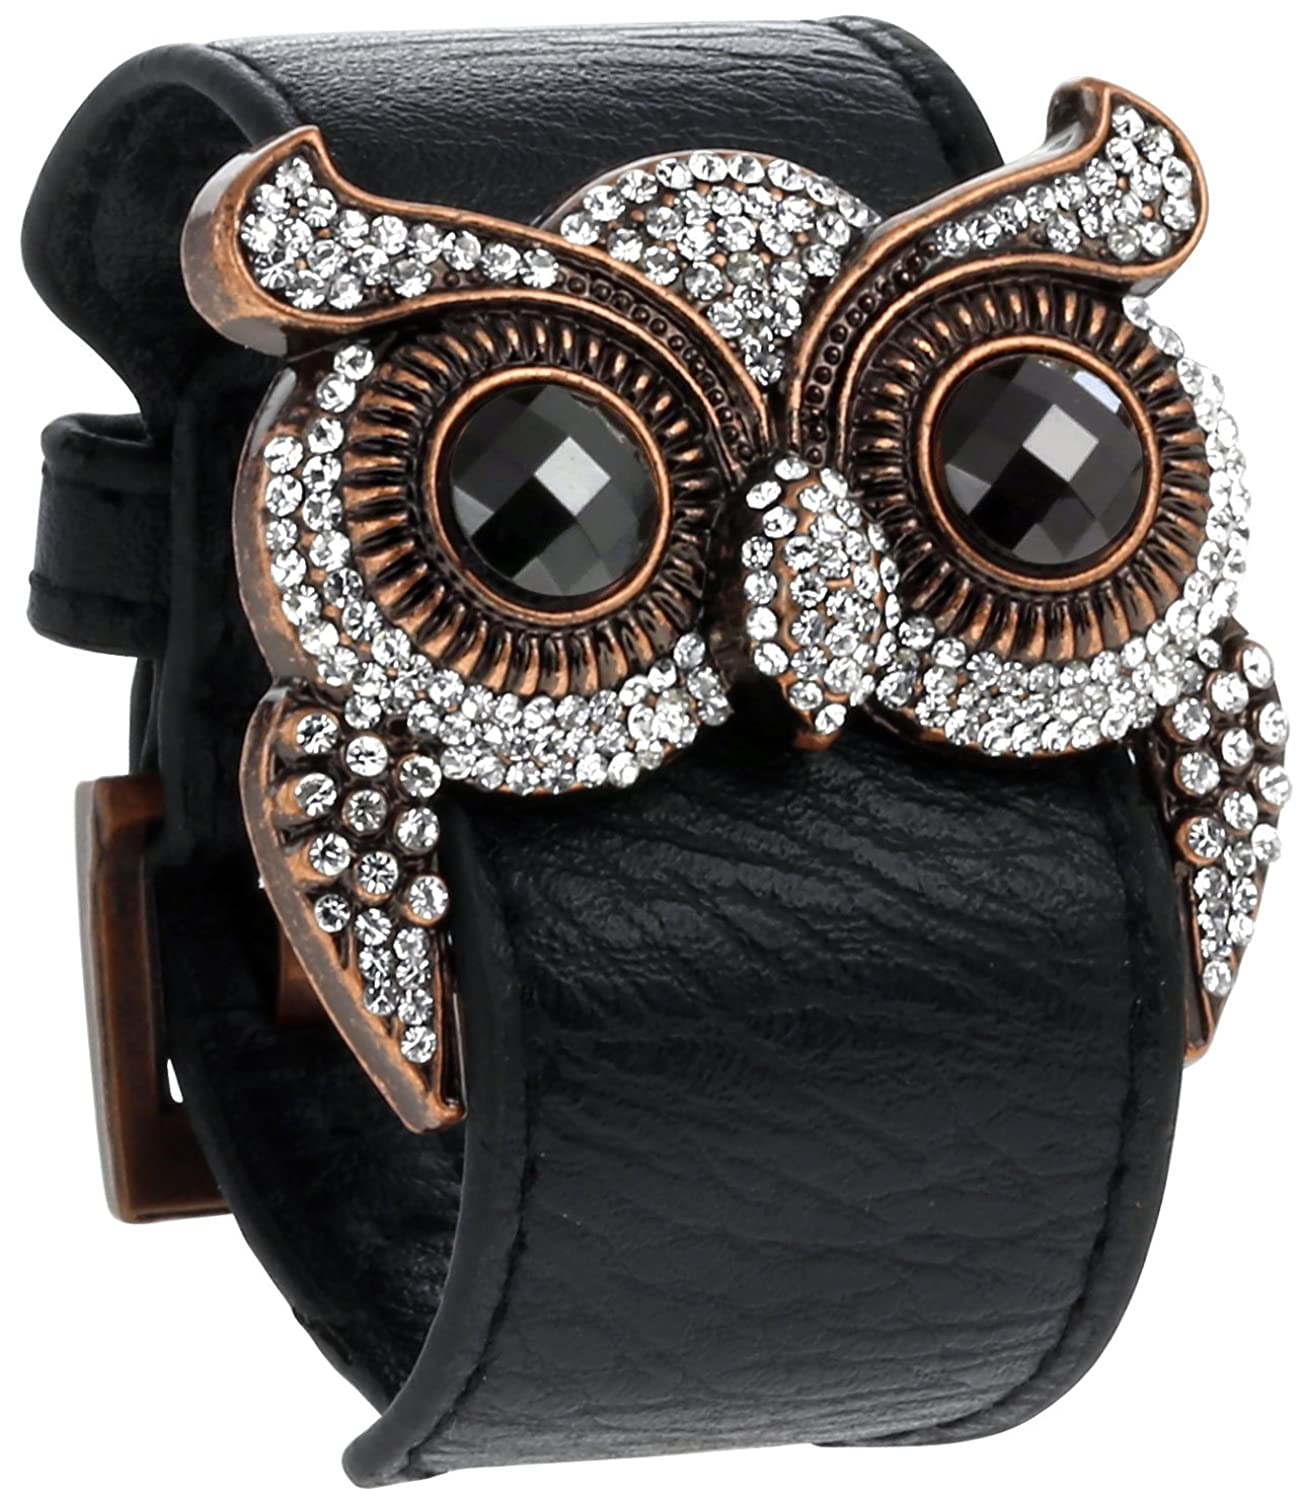 Amazon: Leather Cuff Bracelet With Crystal Owl Charm, Adjustable  Wristband With Metal Alloy Buckle, By Regetta Jewelry: Jewelry